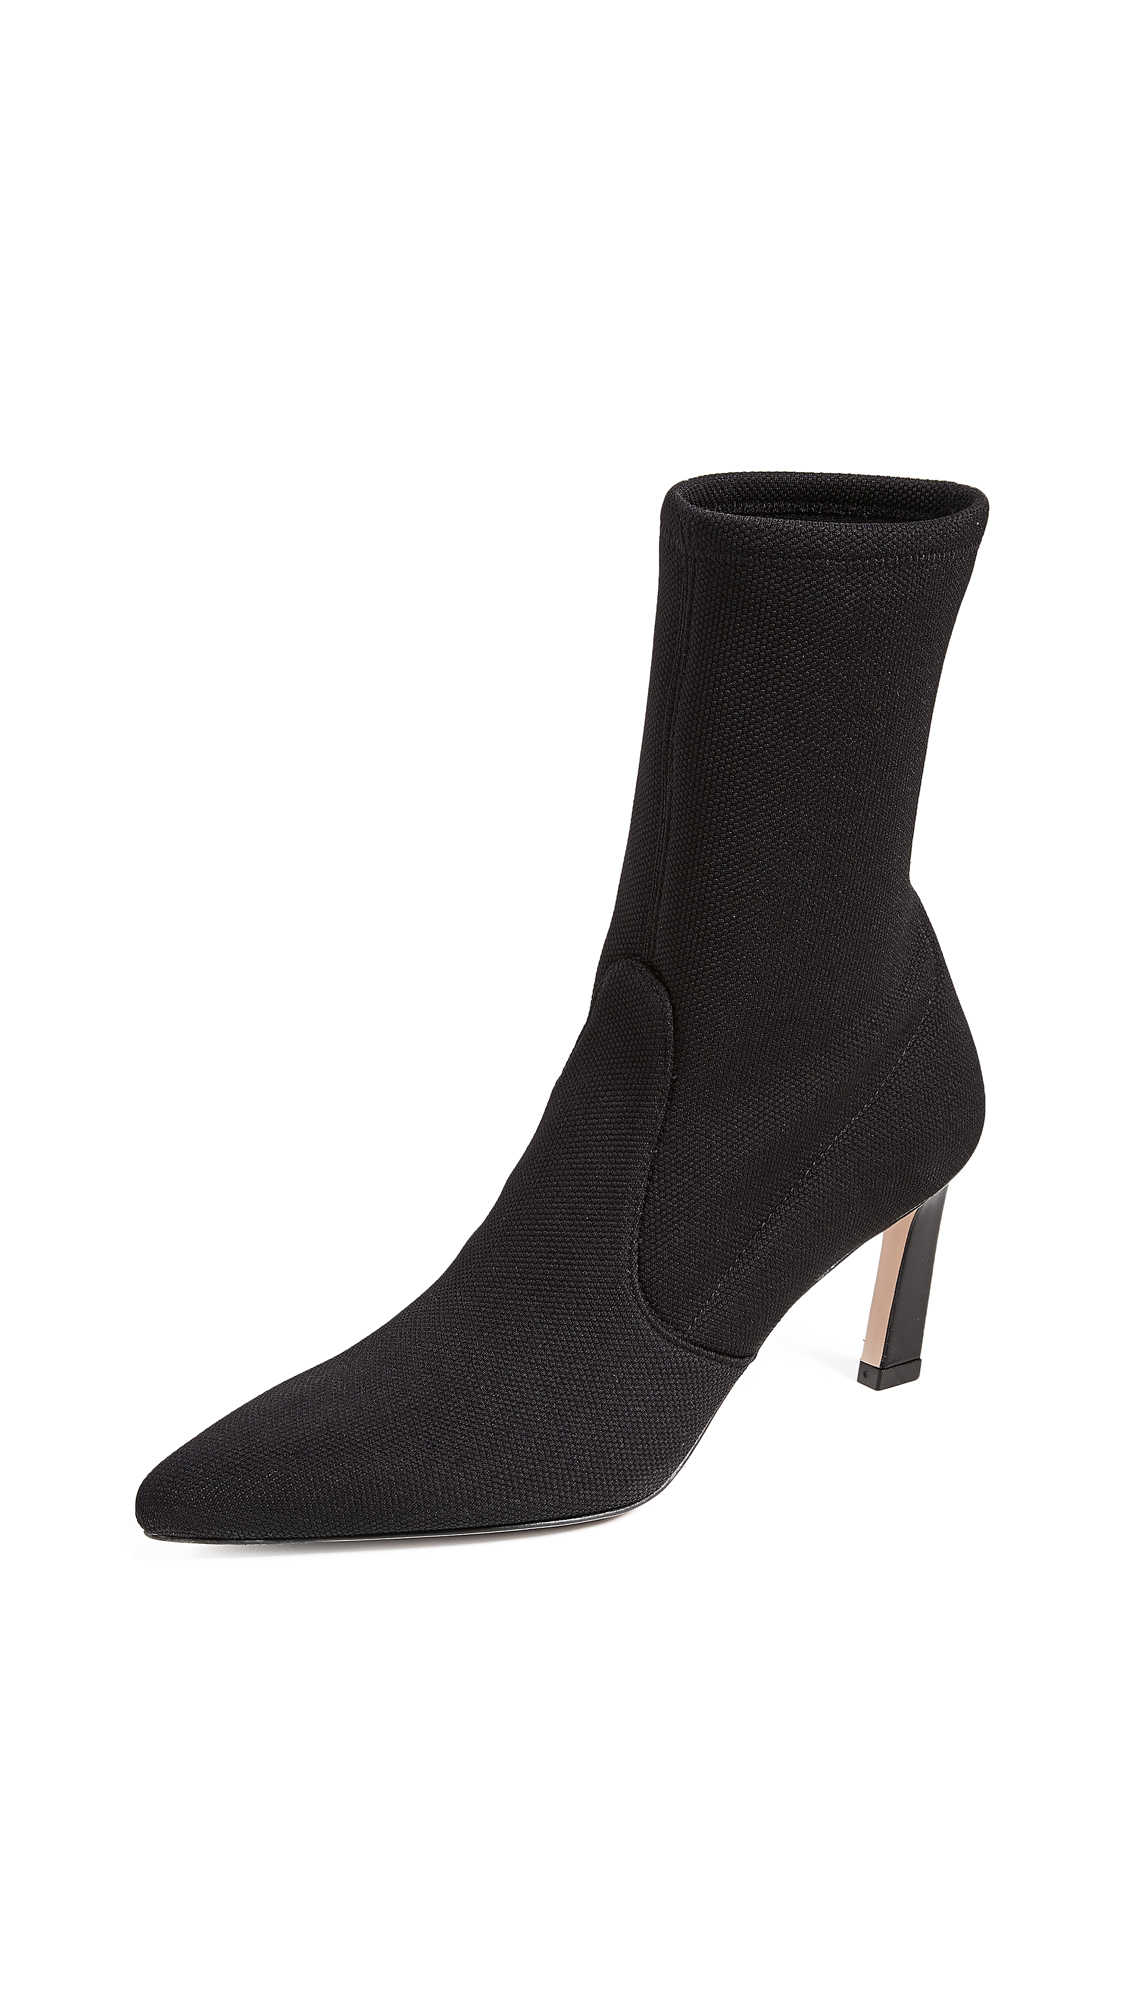 Photo of Stuart Weitzman Rapture 75mm Boots online shoes sales